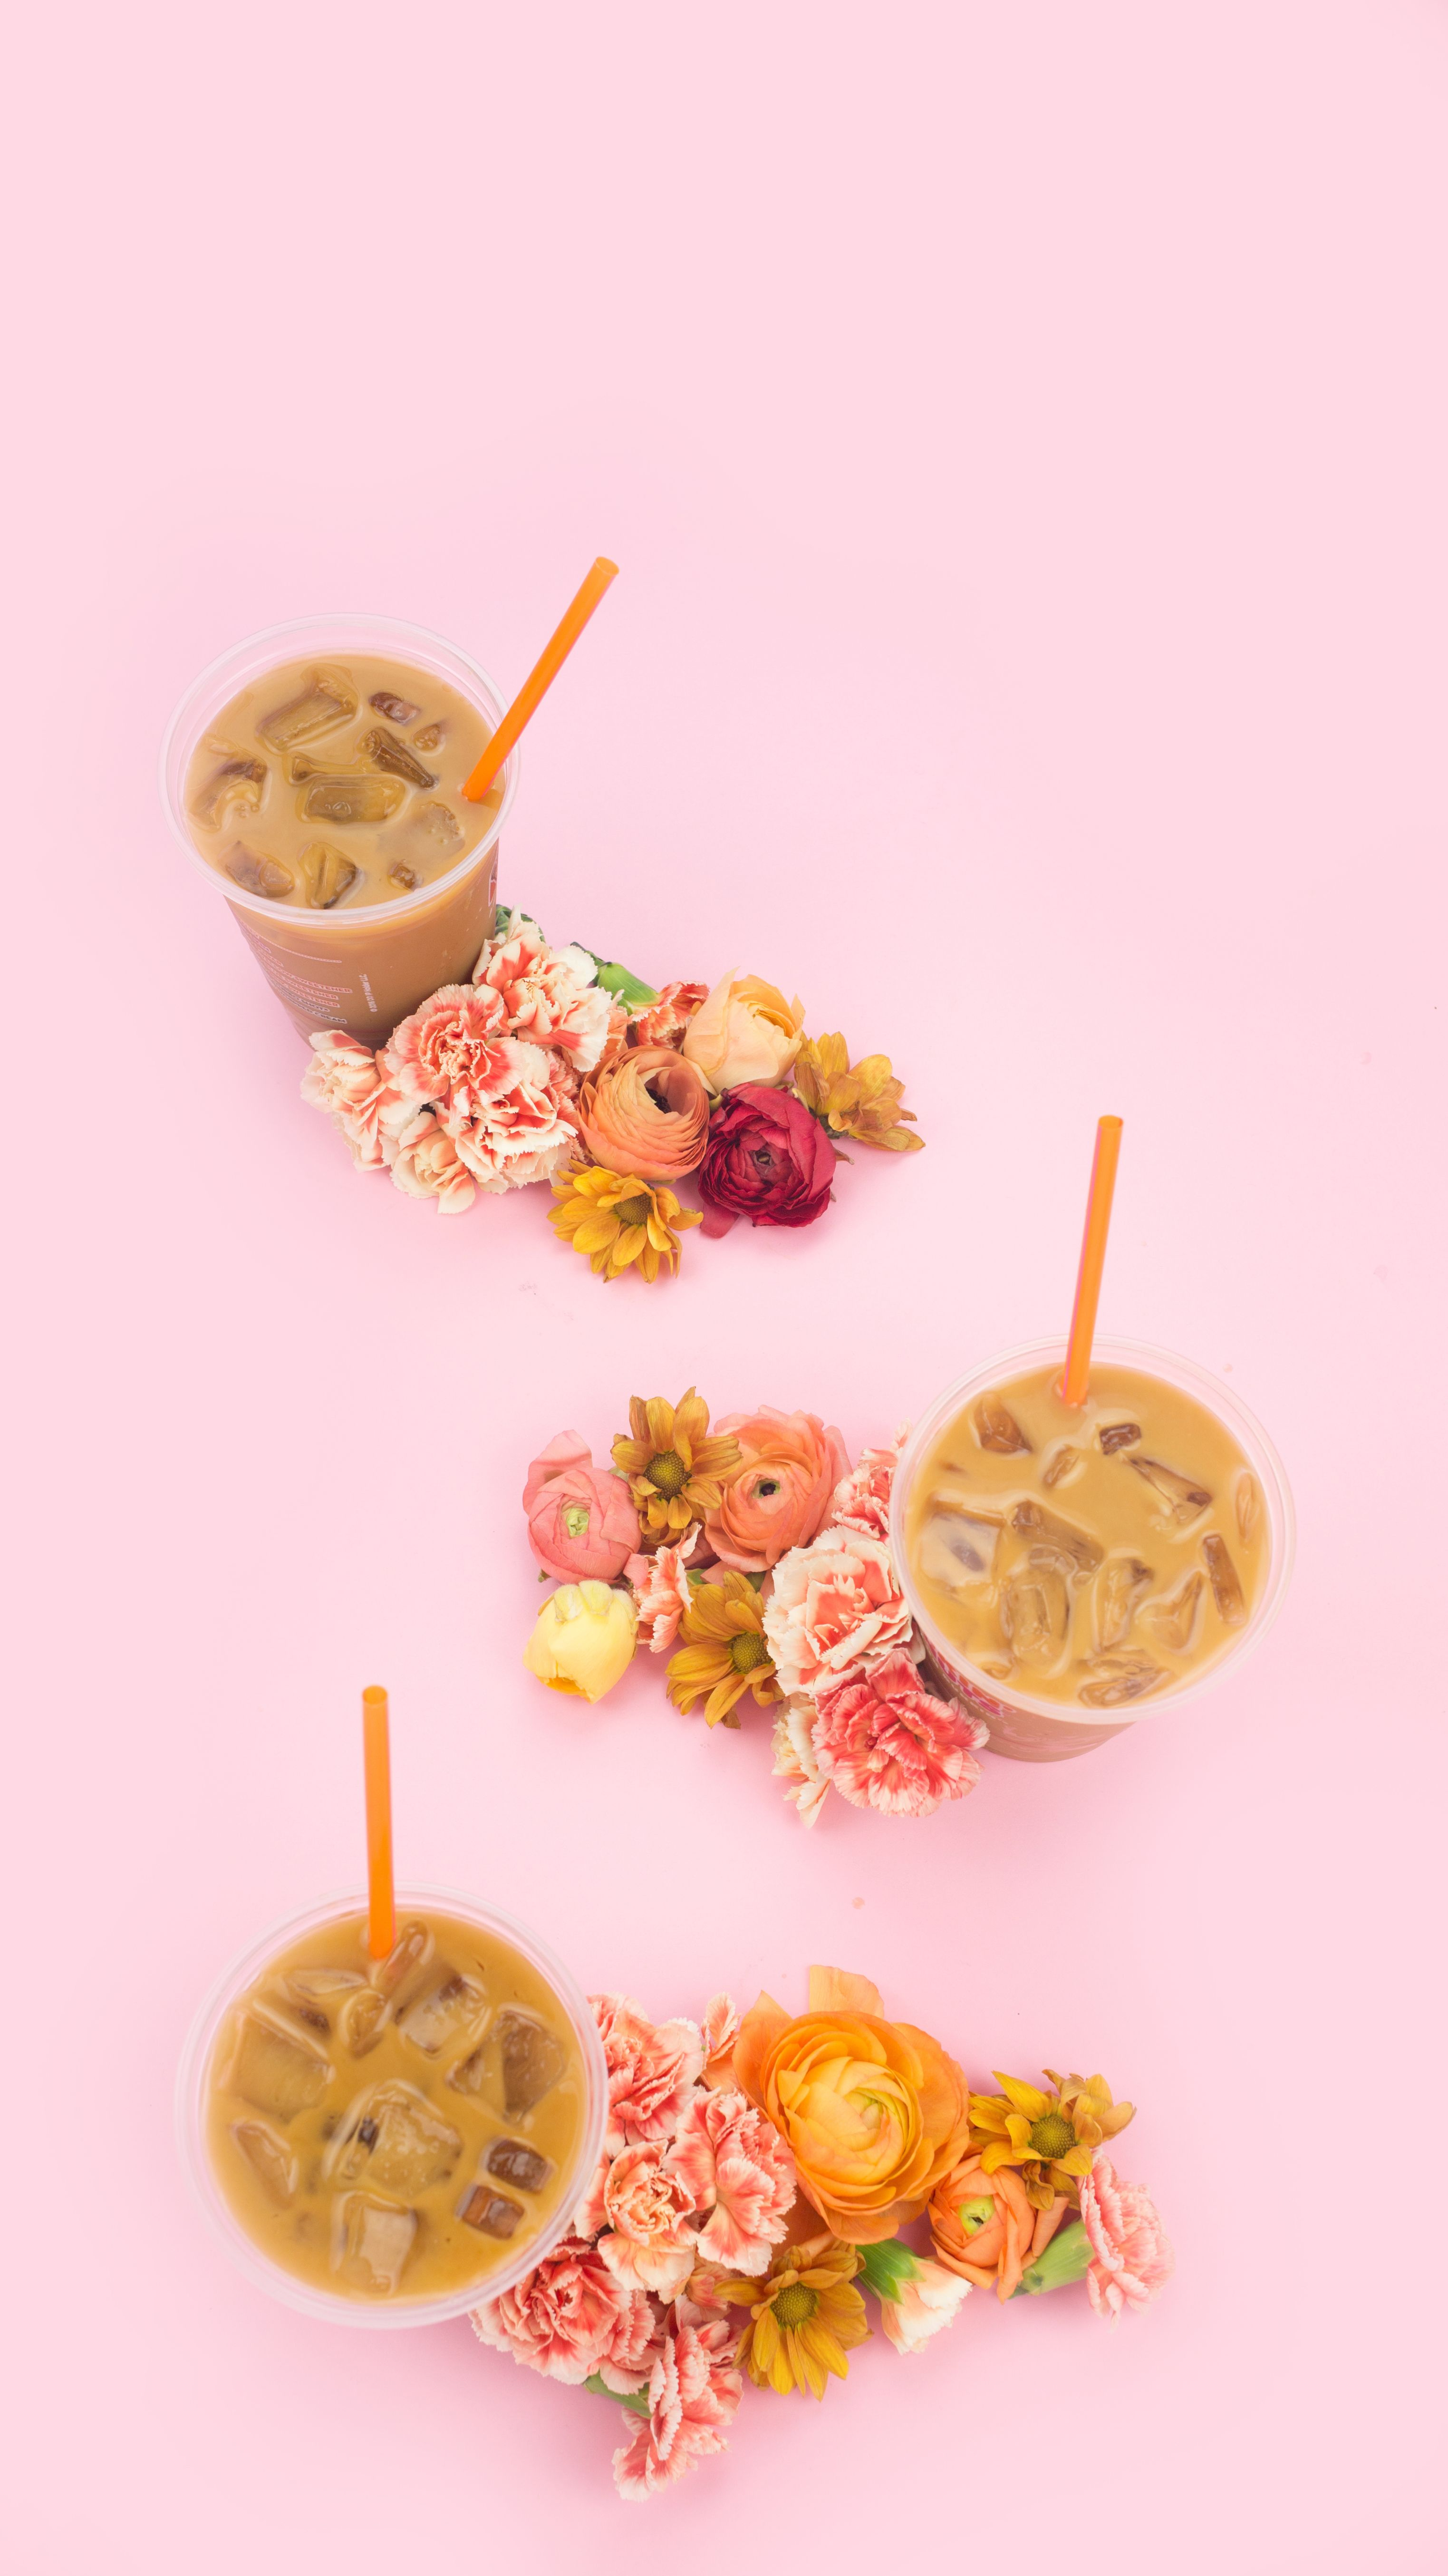 3046x5418 Celebrating Iced Coffee Season with New Mobile Wallpapers ...